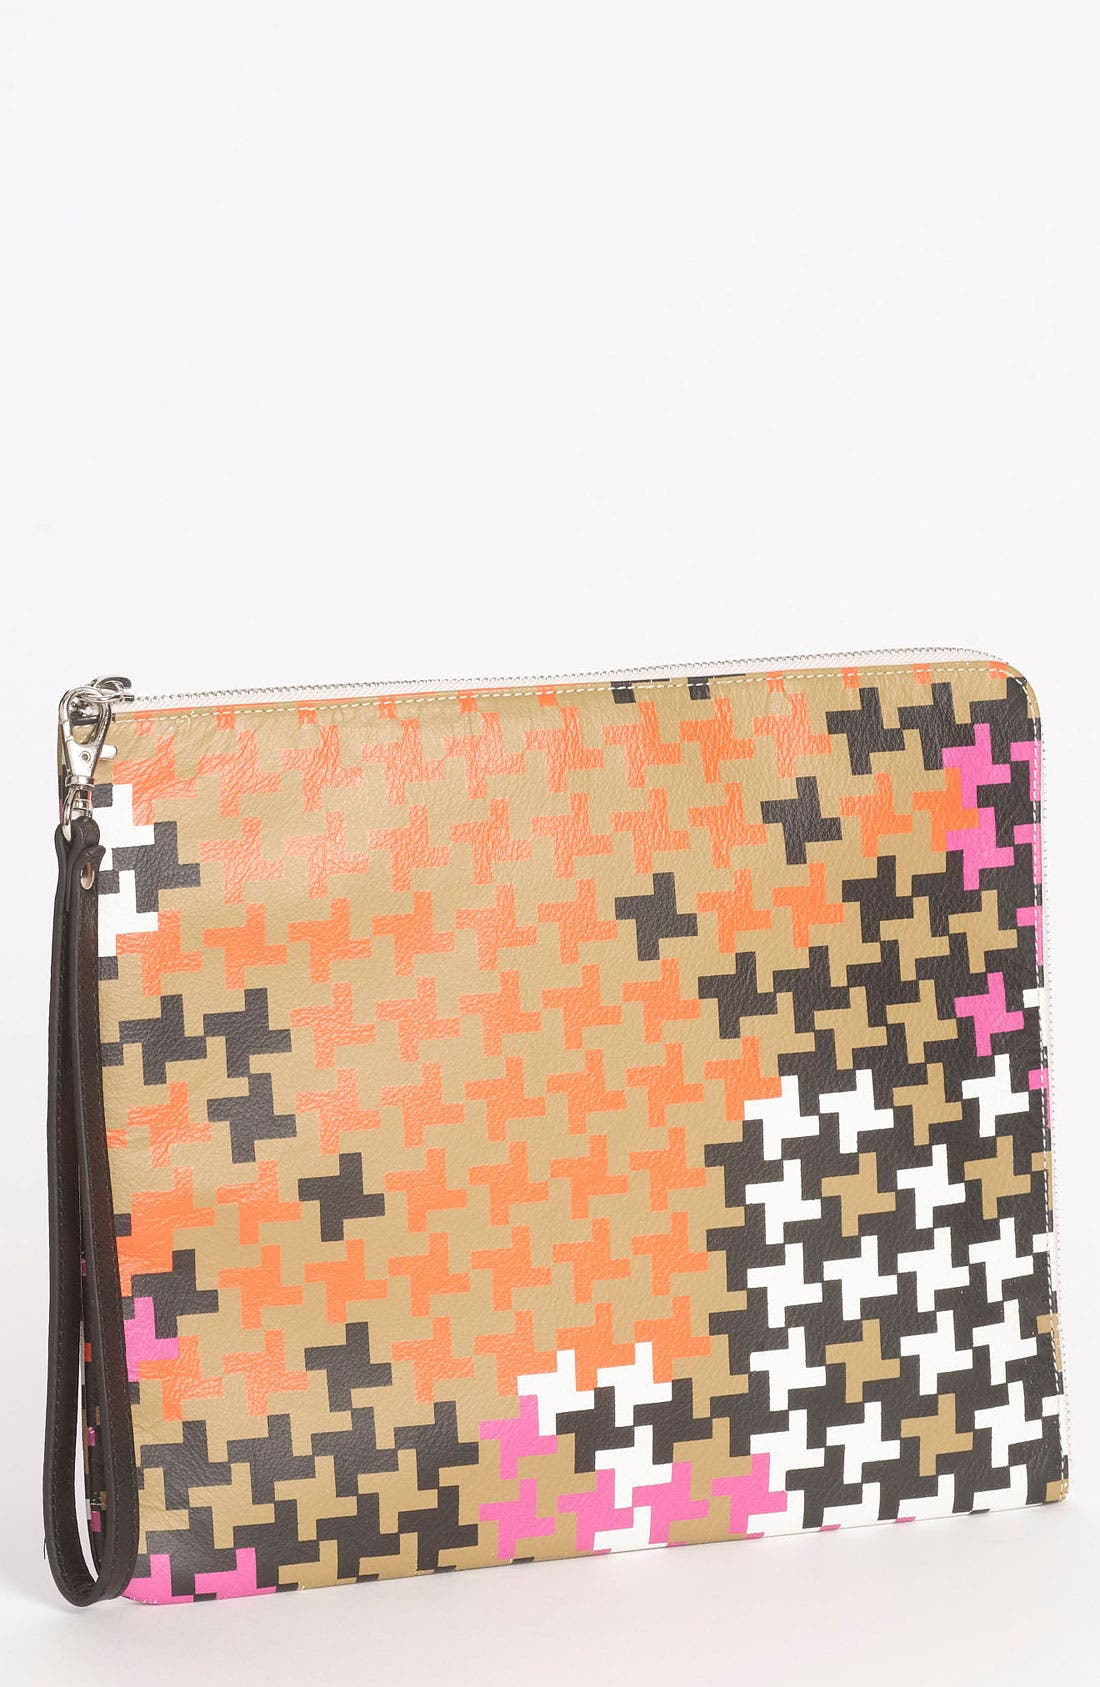 Alternate Image 1 Selected - Yarnz 'Camo Houndstooth' Wristlet Clutch